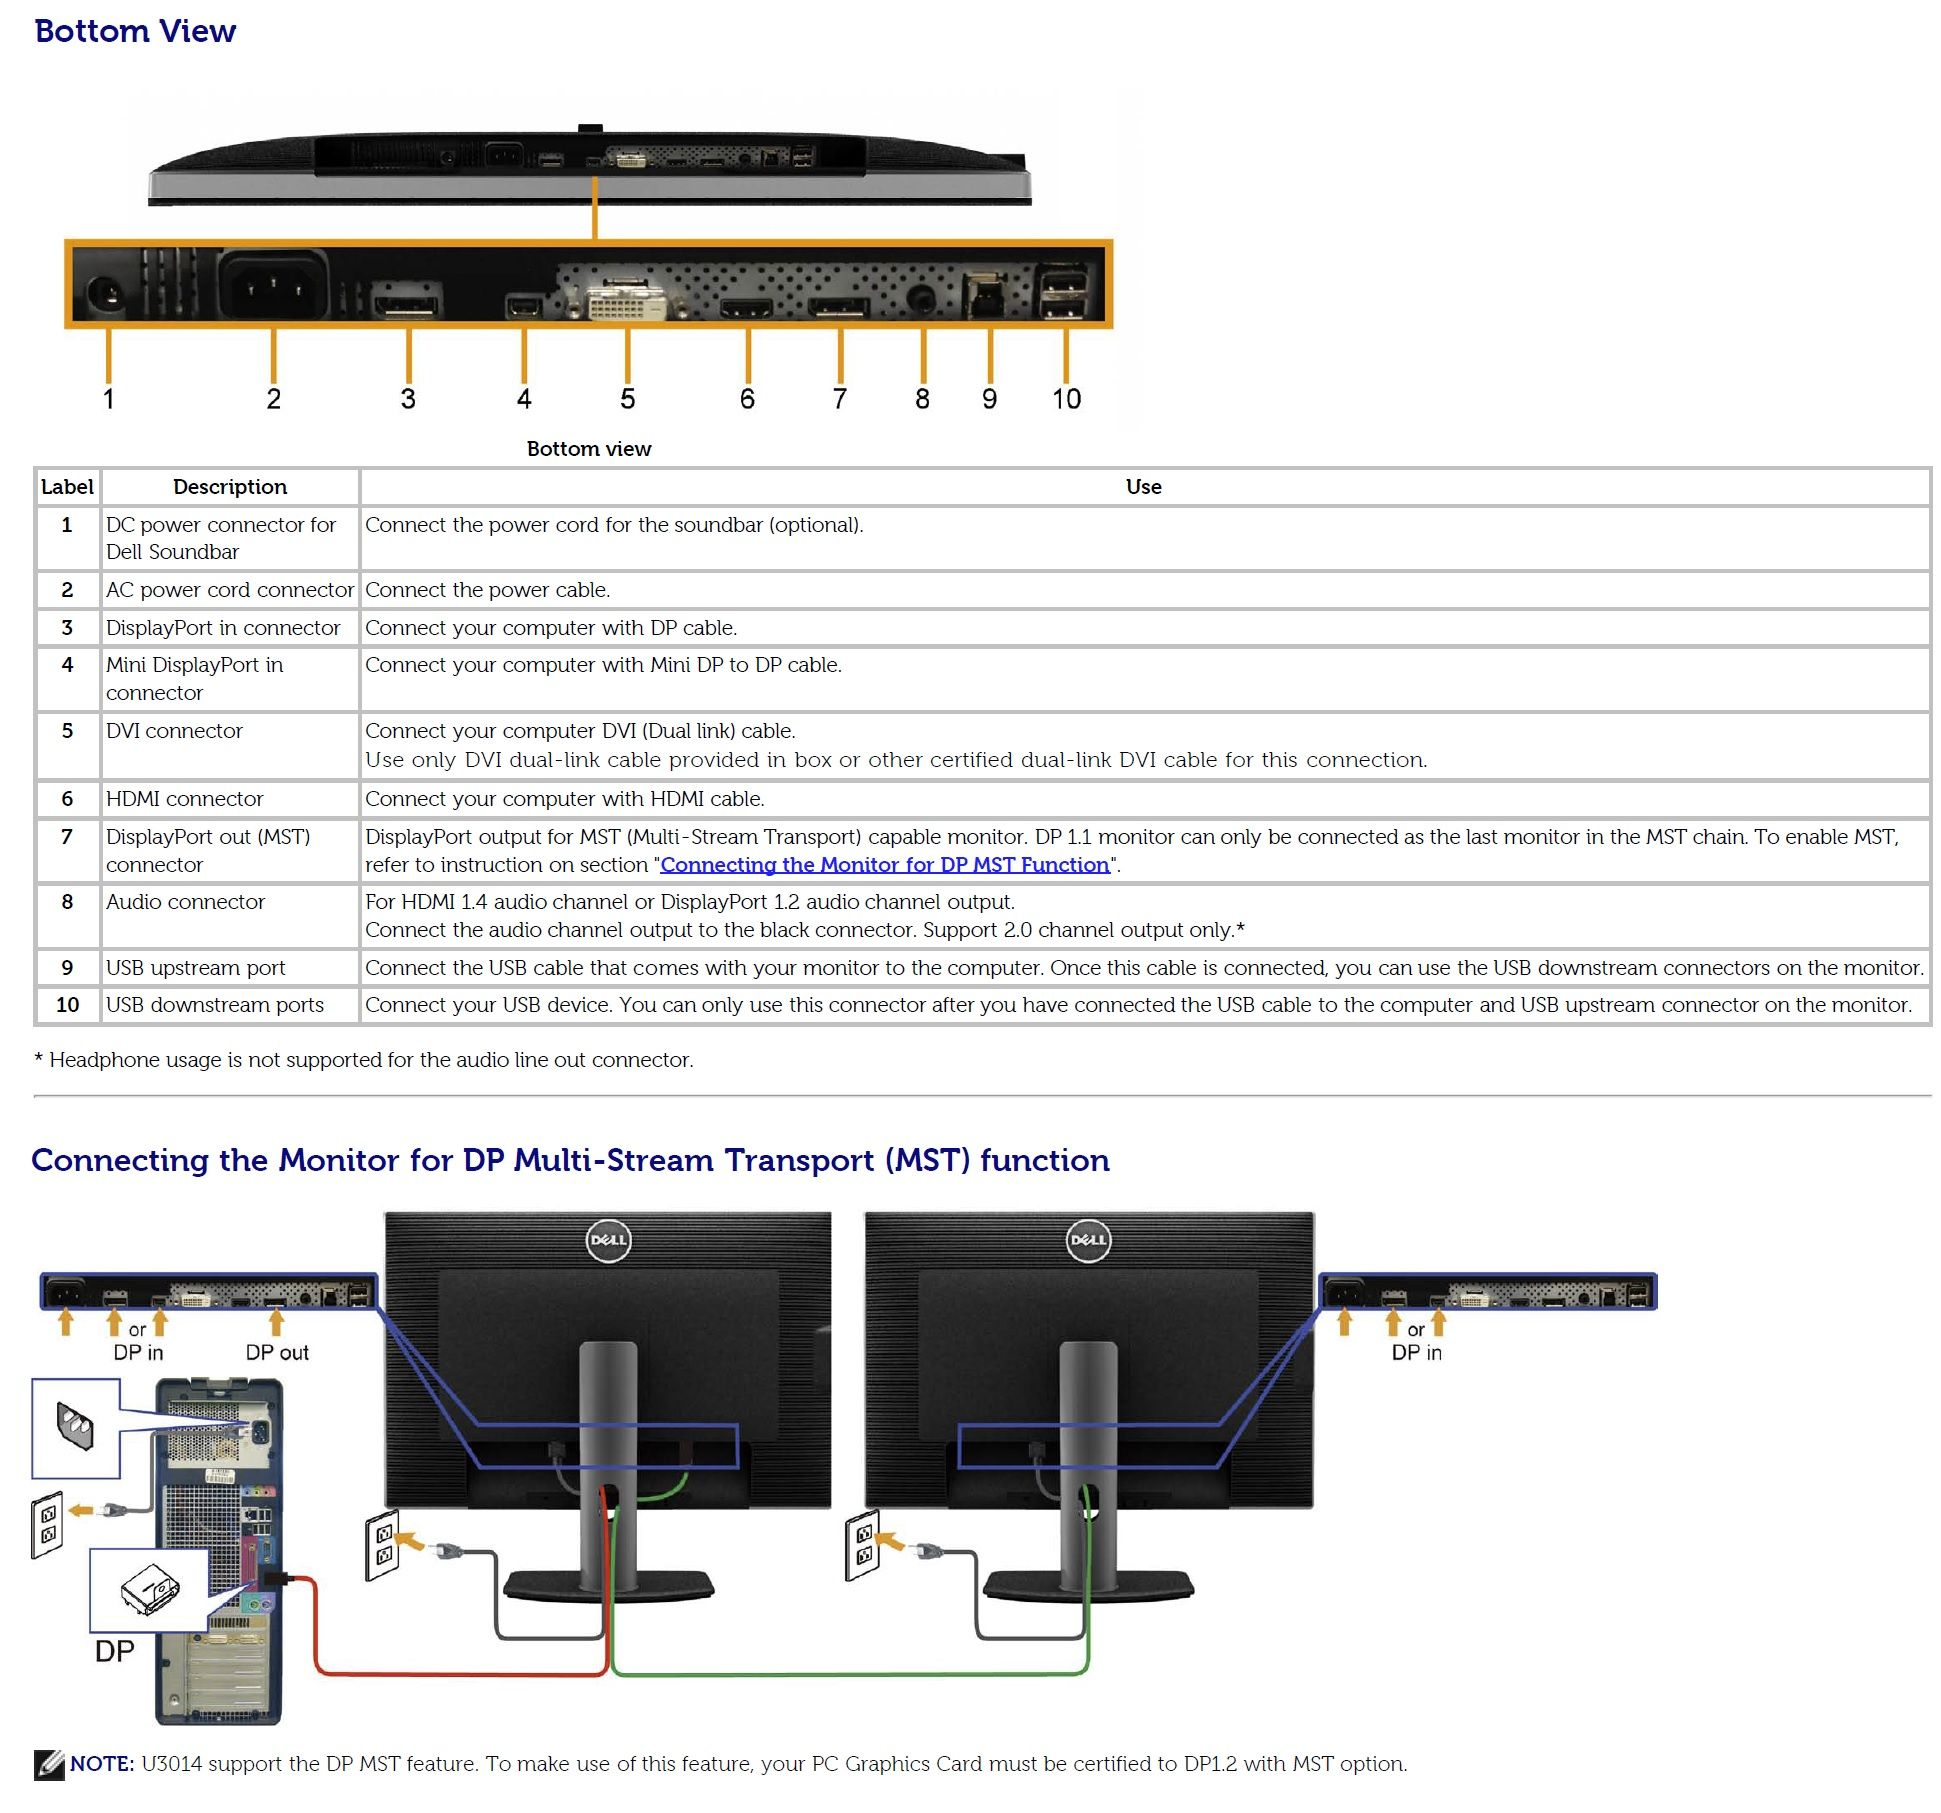 Daisy Chain Displayport Diagram Free Download Wiring Wire Utilitech 3 10gpm 1 2 Hp Submersible Well Pump And Control Box Dell U3014 Chaining Setup Rh Jdhodges Com